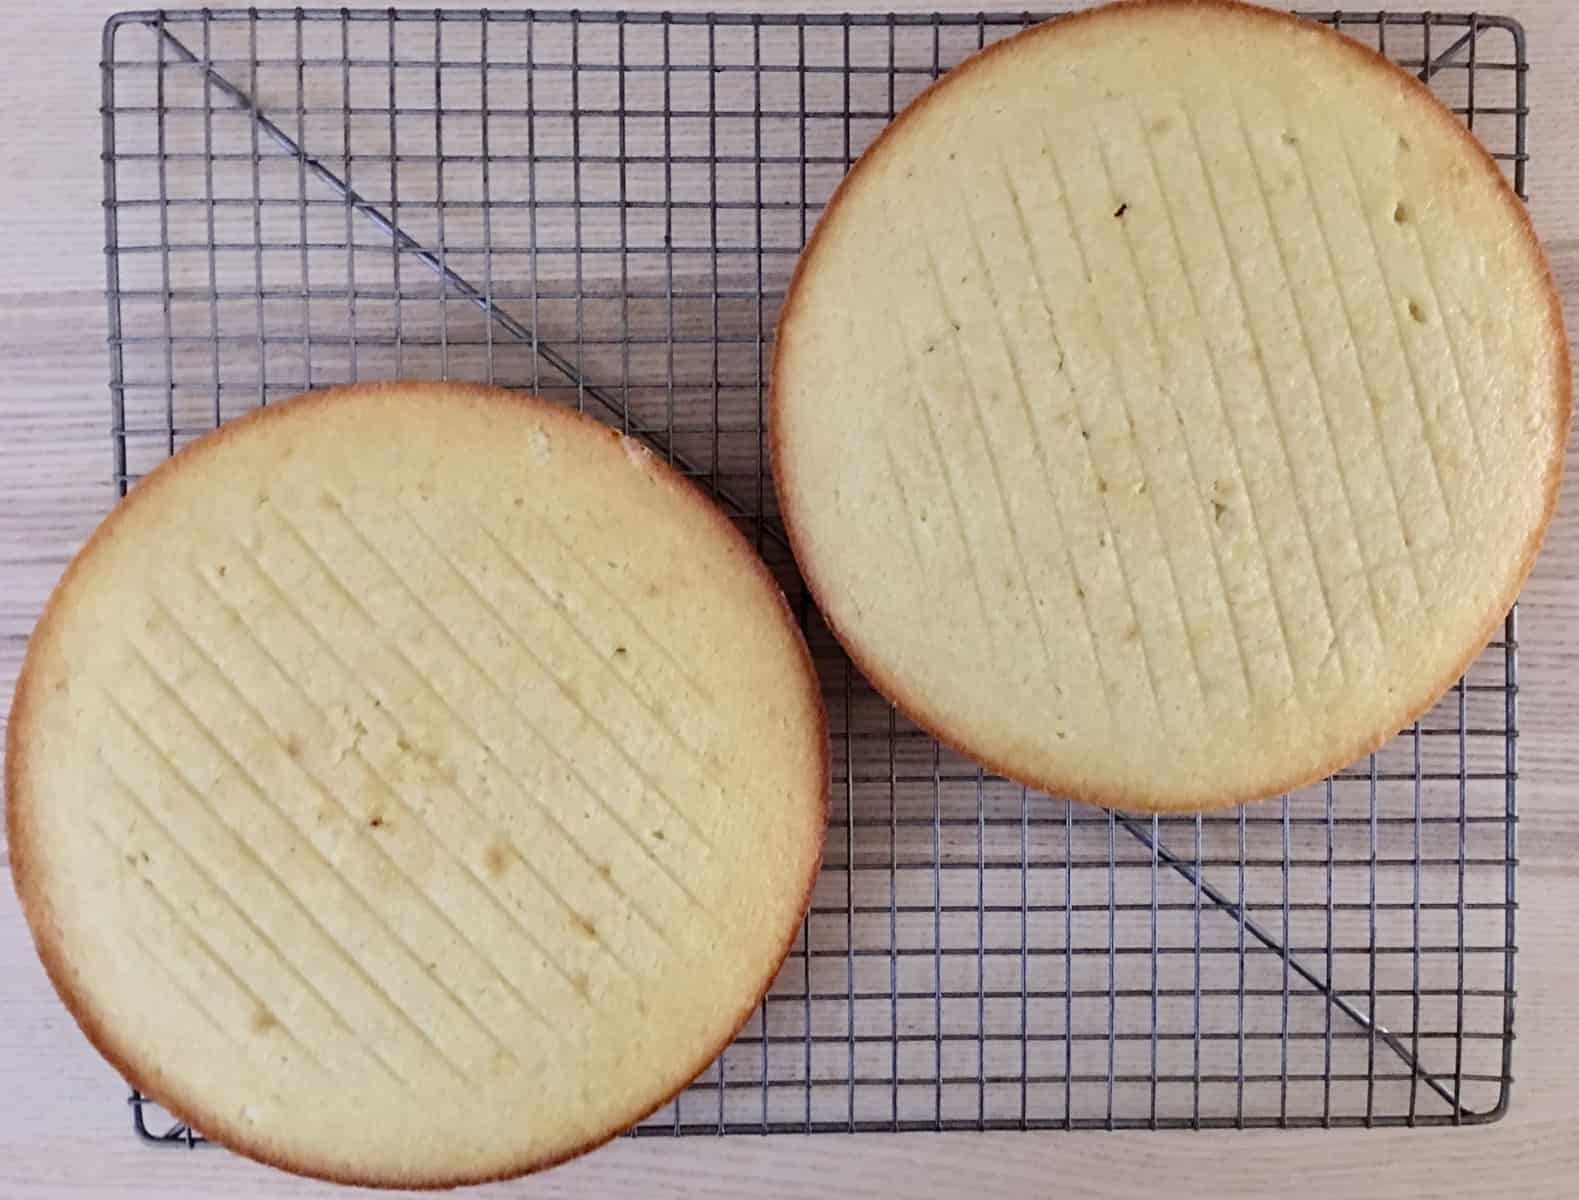 baked rounds cooling on a wire cooling rack.